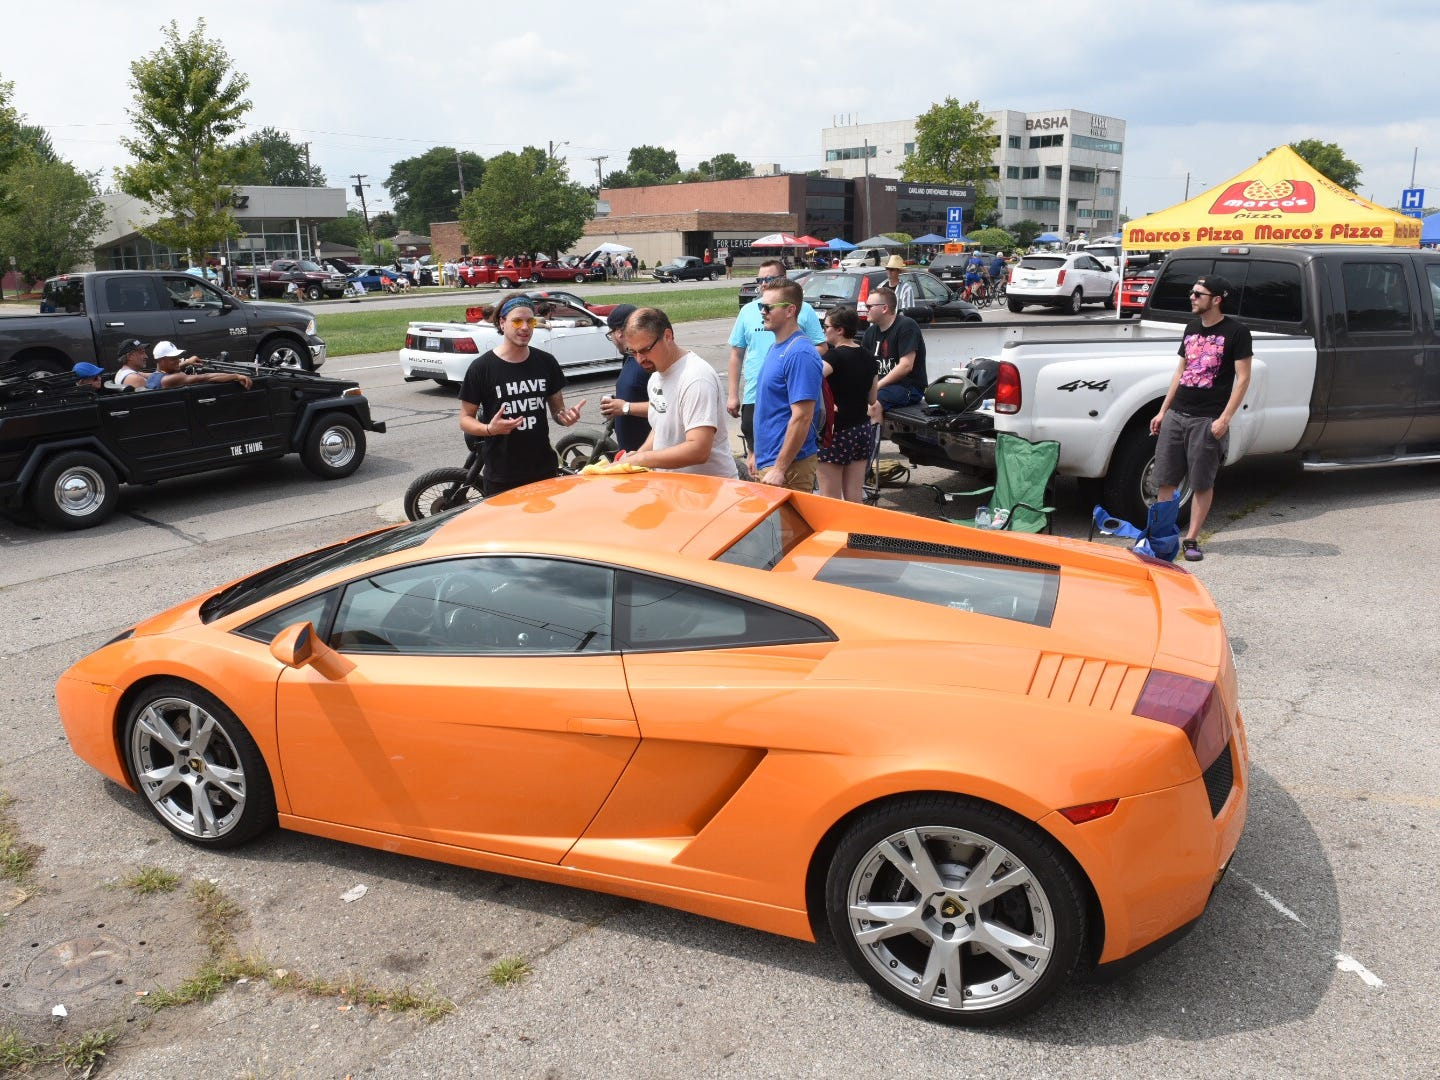 A Lamborghini Gallardo draws a crowd, while a VW Thing cruises by.